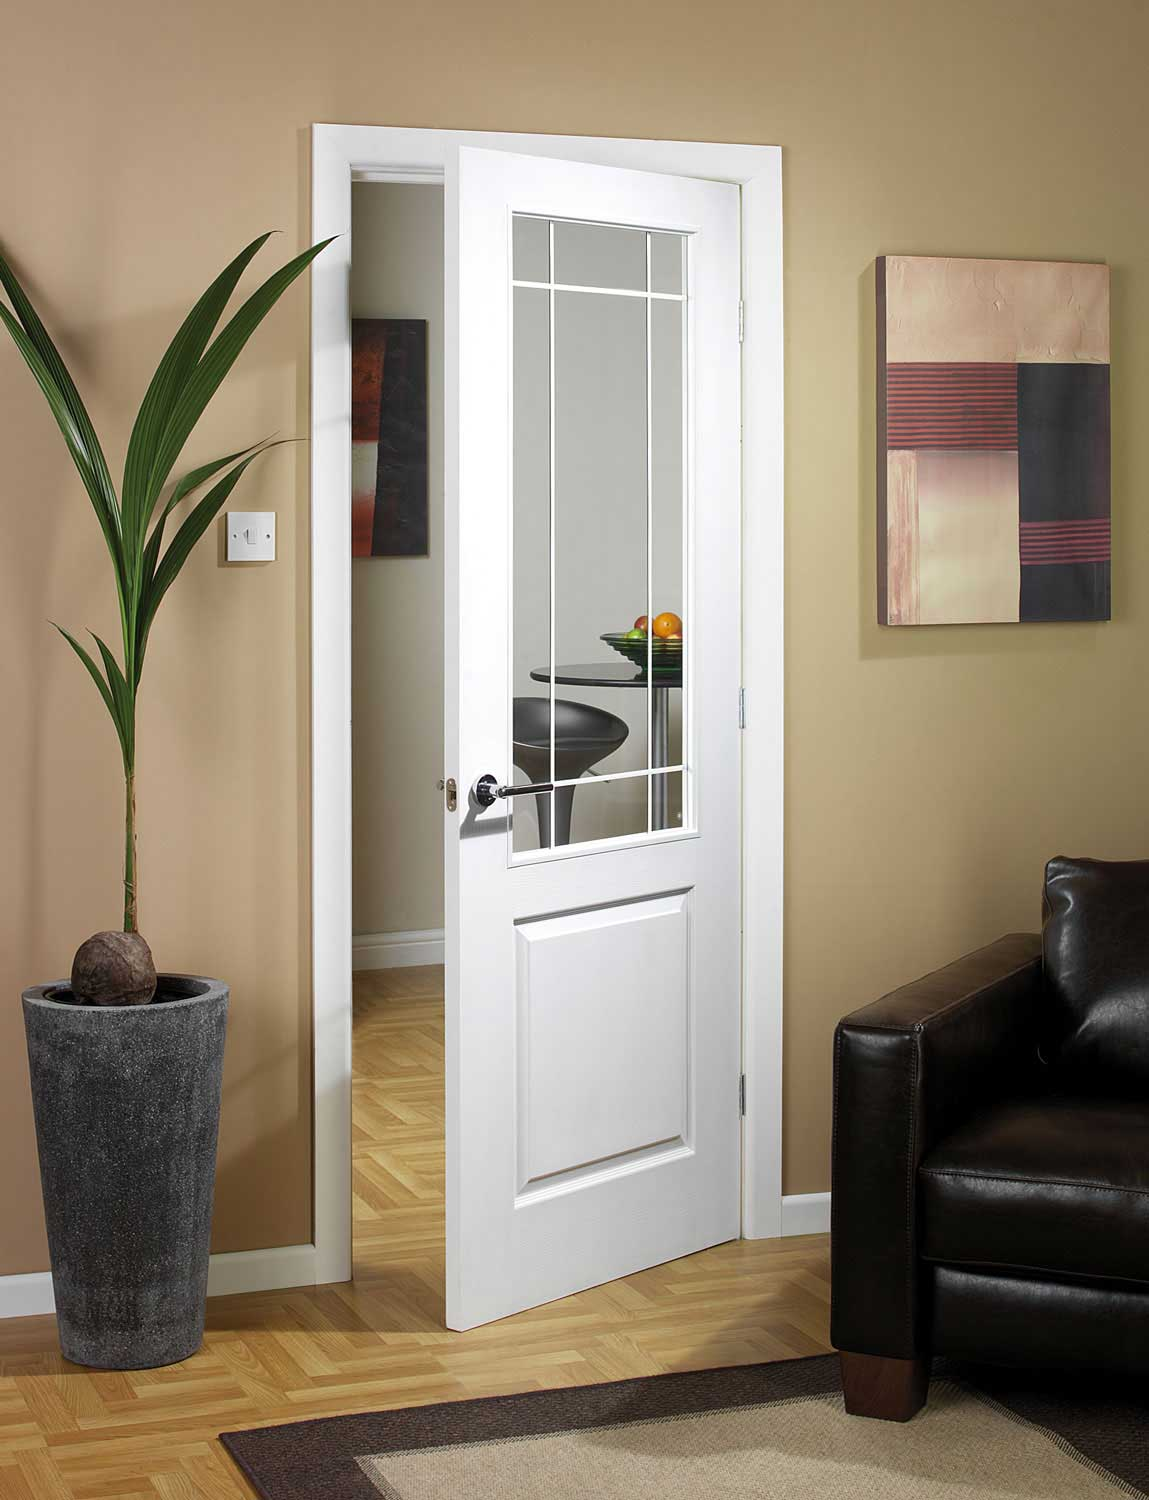 1500 #906E3B Manhattten Half Light Textured White Primed Door image Doors Half Glass 42031149